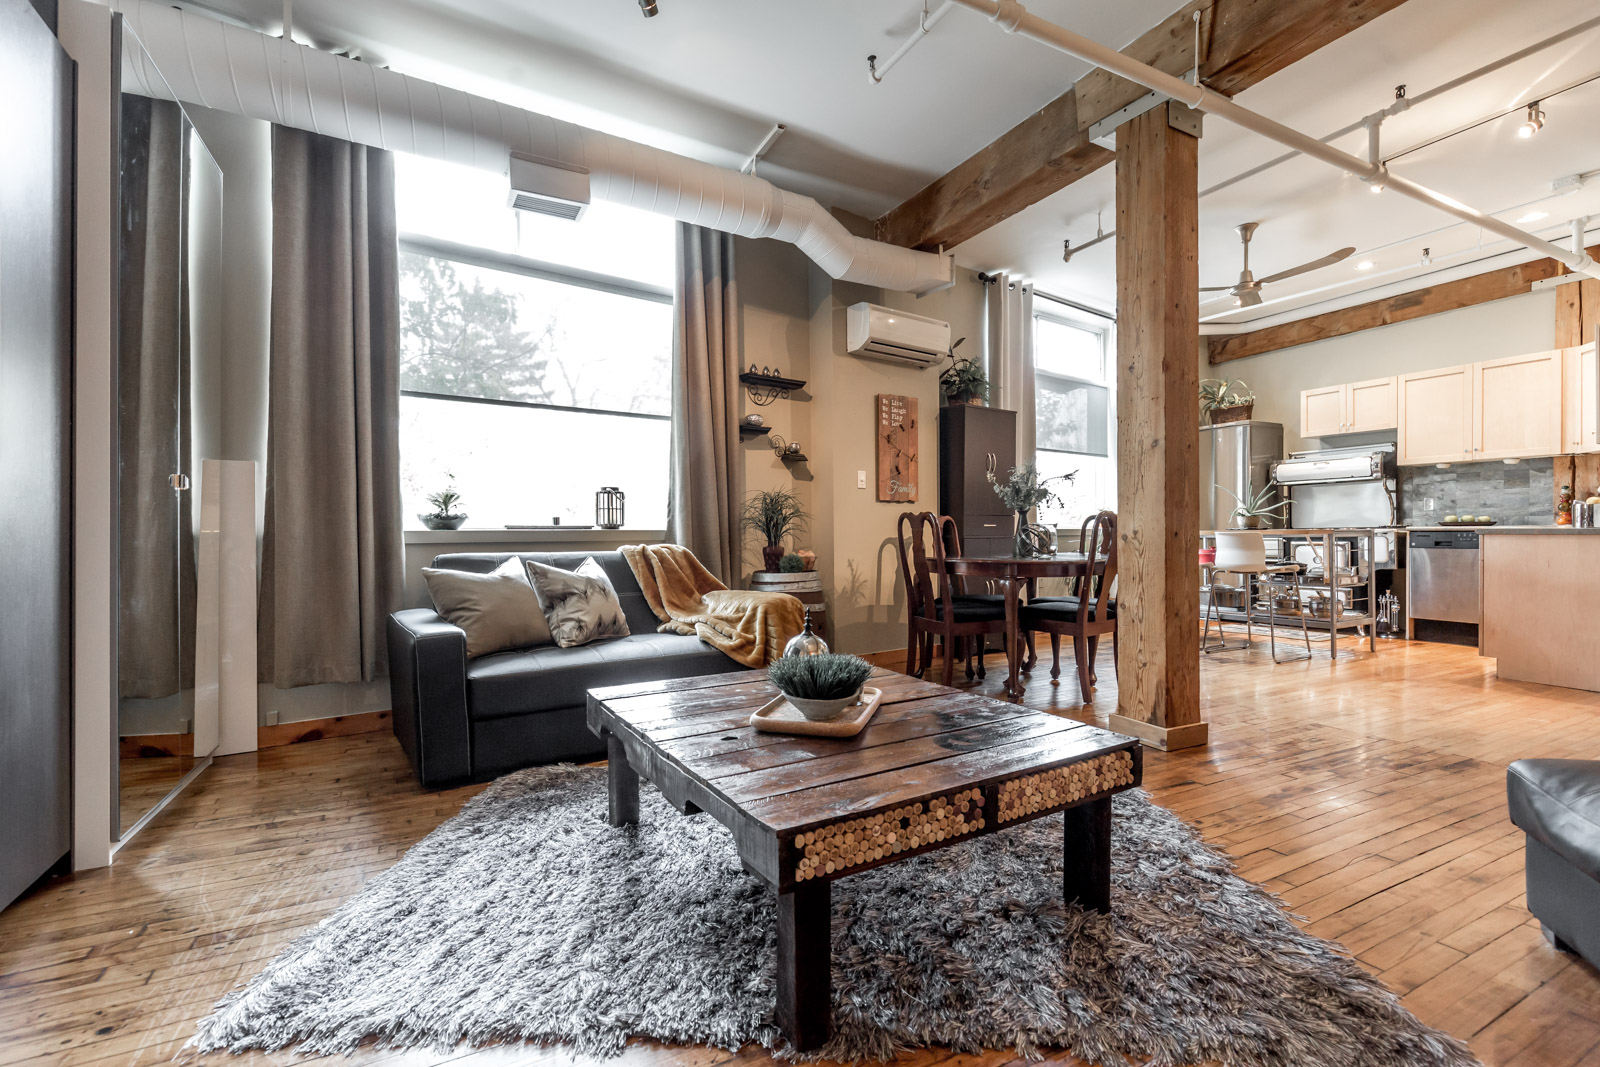 121 prescott ave loft 12- the stockyard lofts Matthew Fernandes